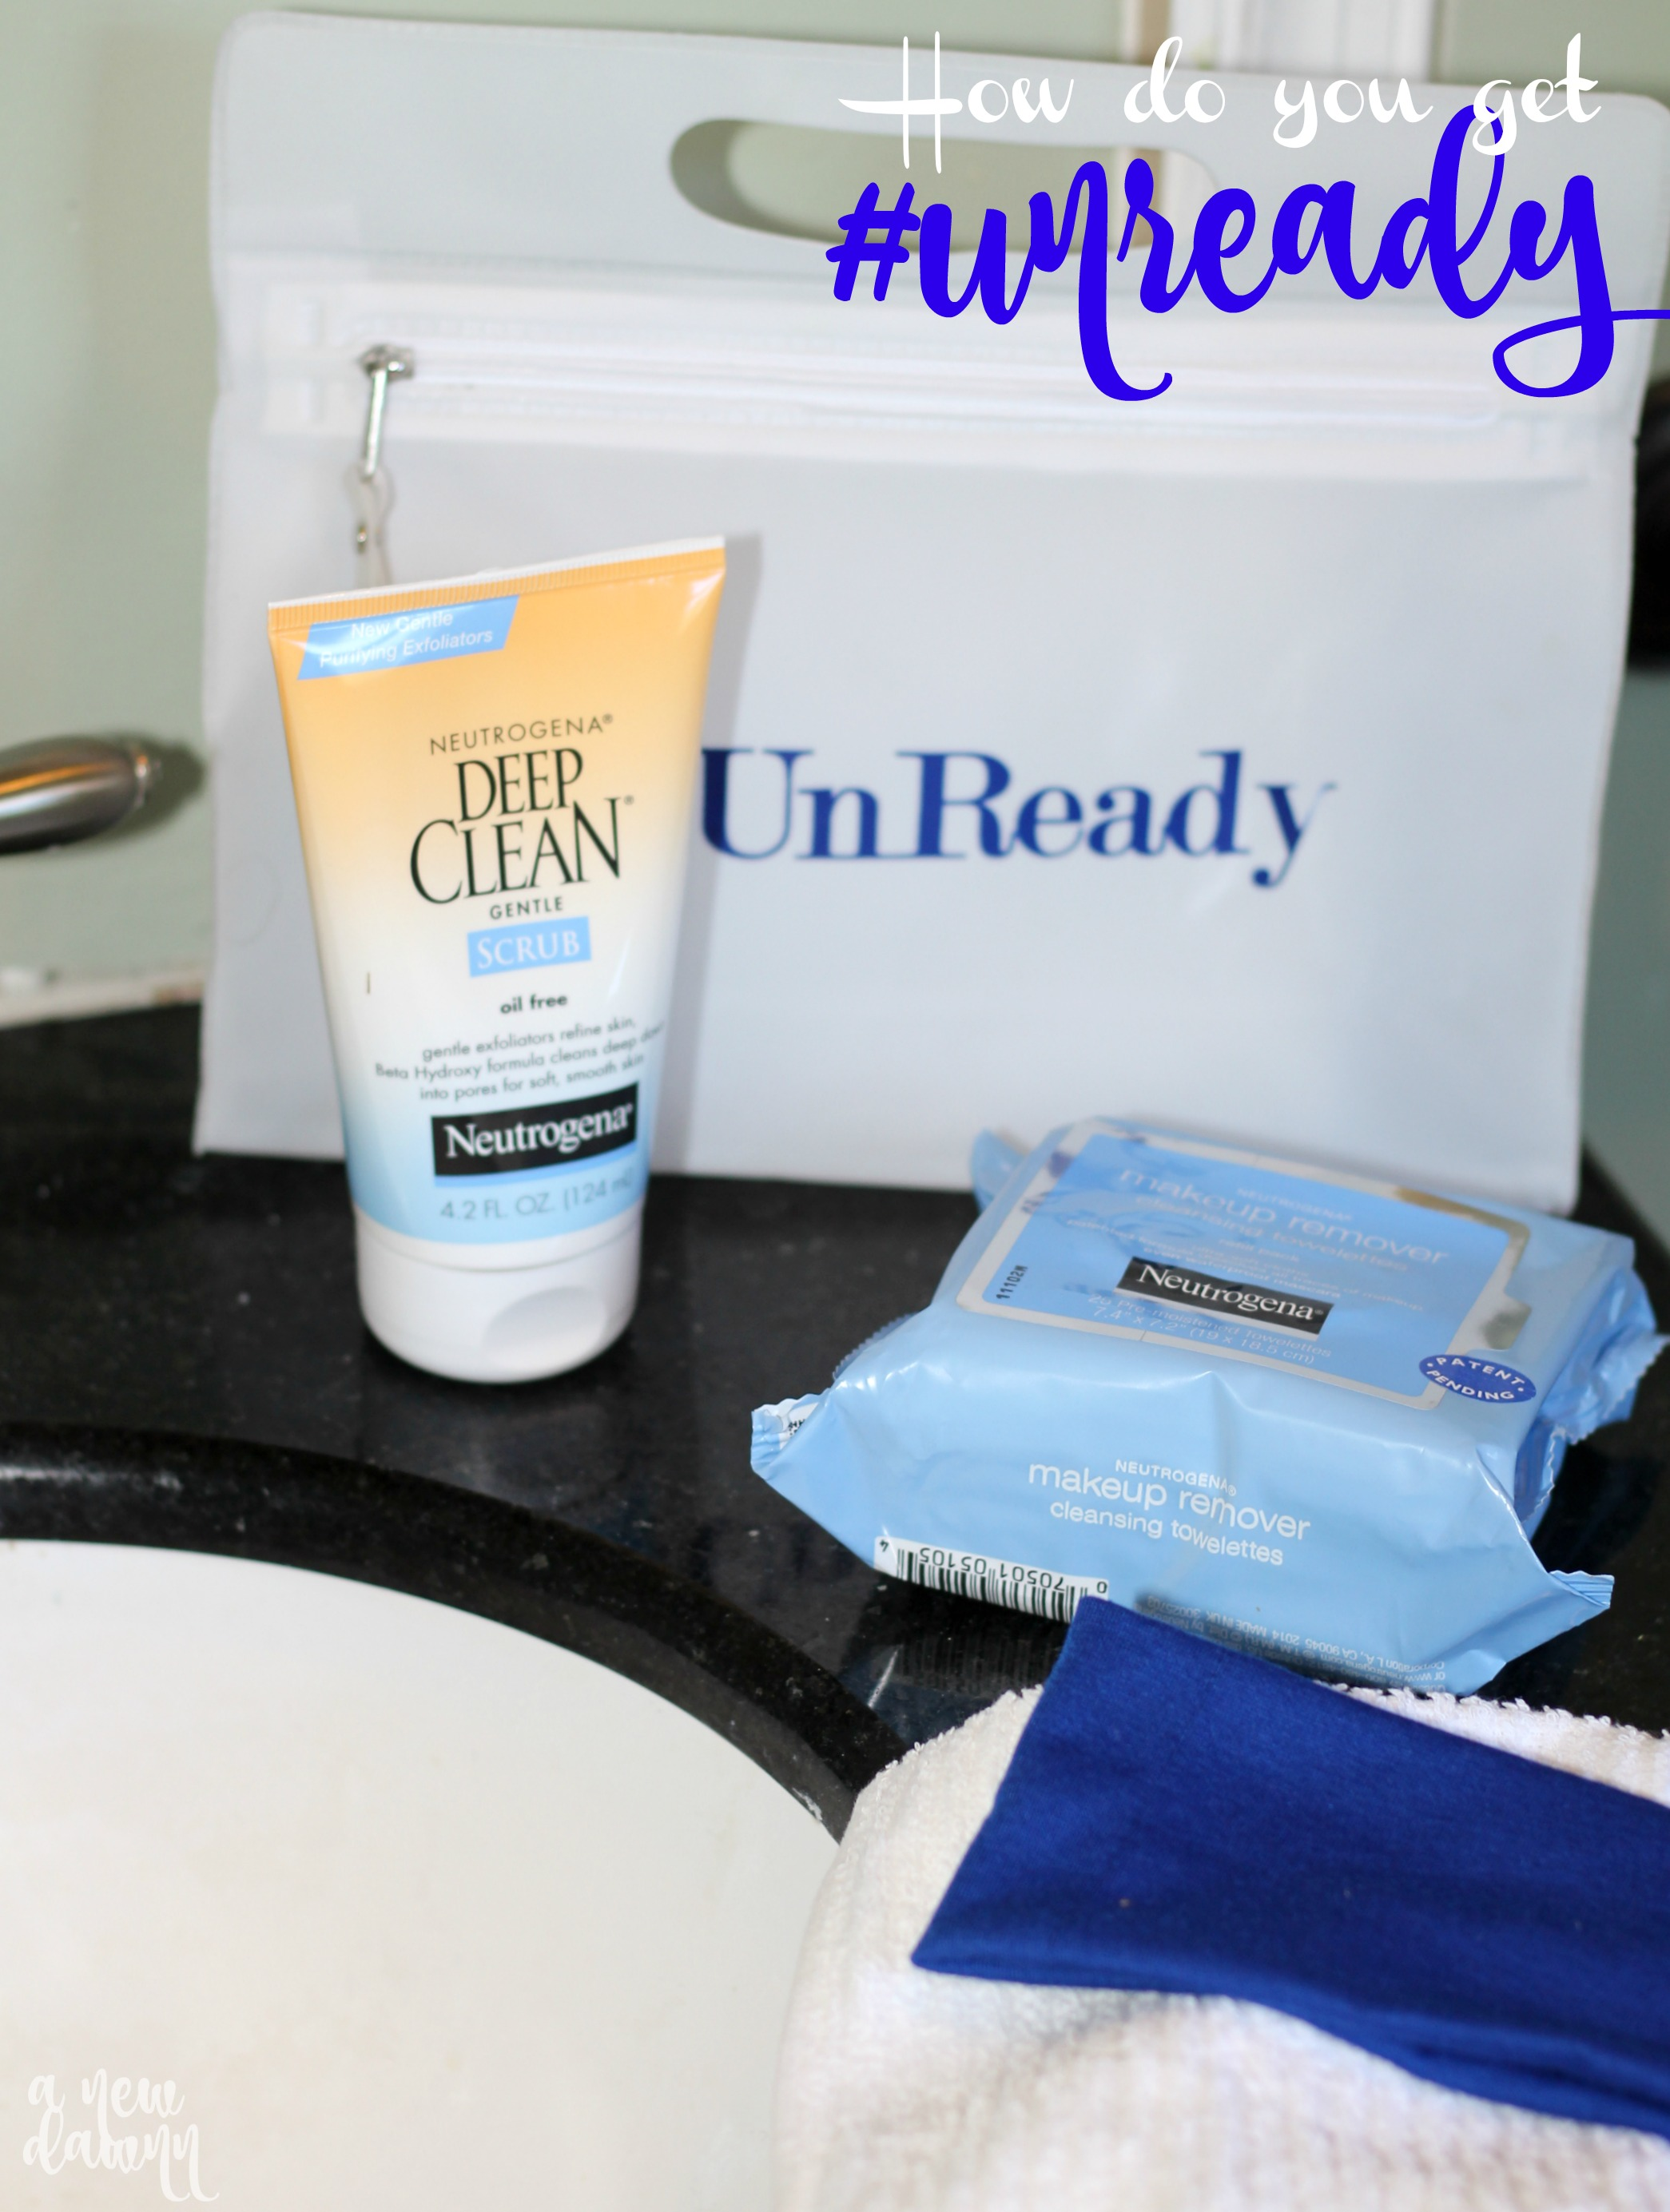 unready-neutrogena